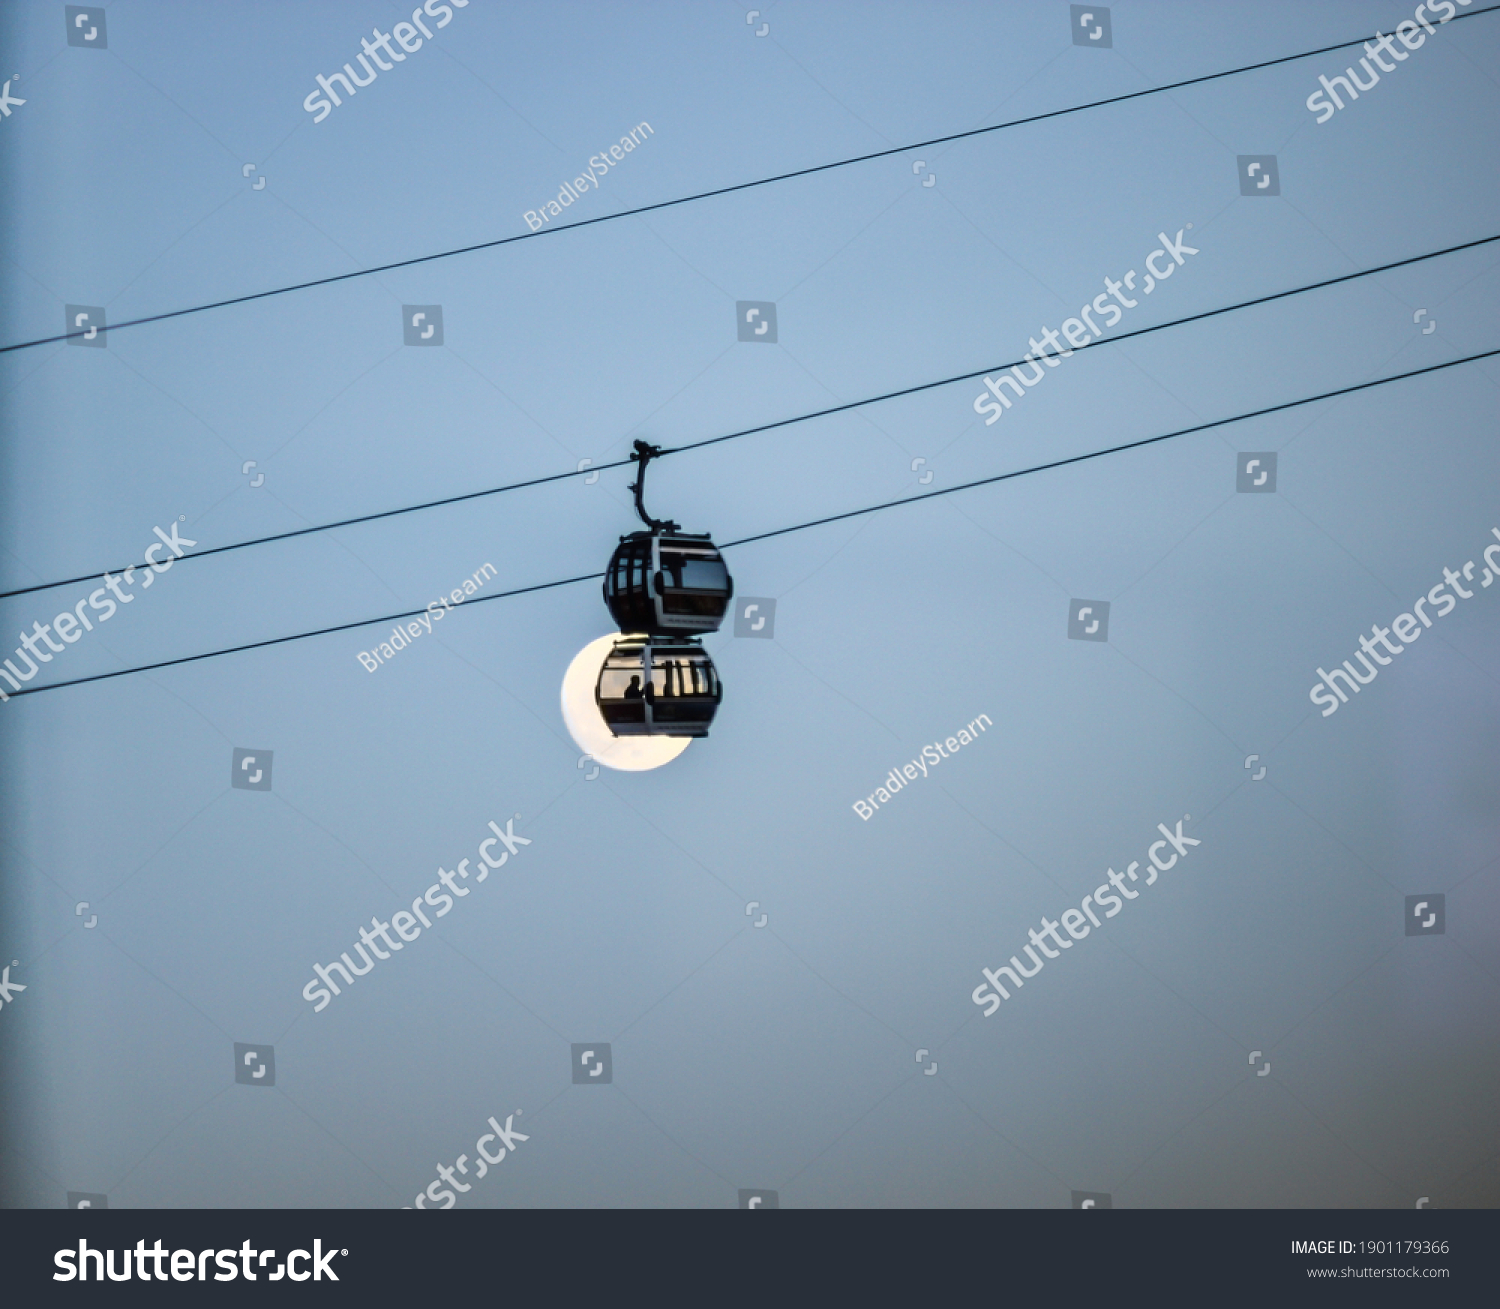 stock-photo-london-emirates-airline-cabl